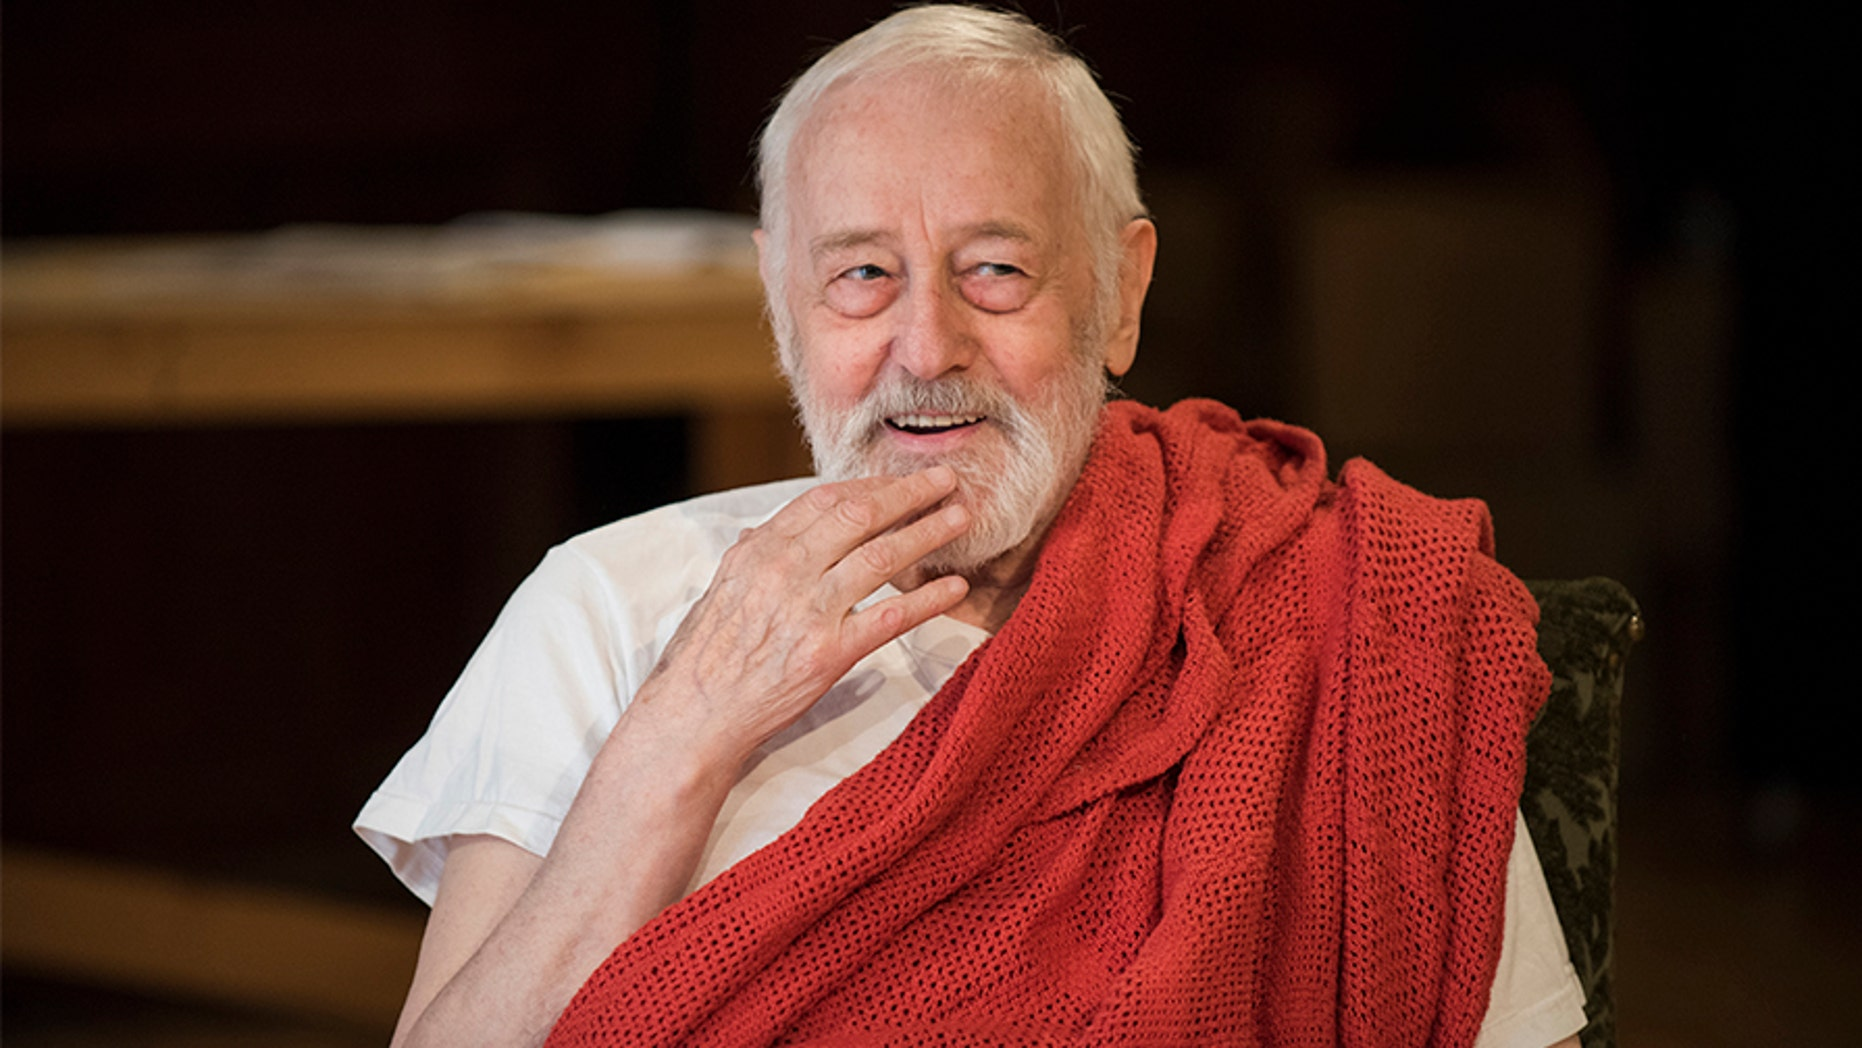 John mahoney interview